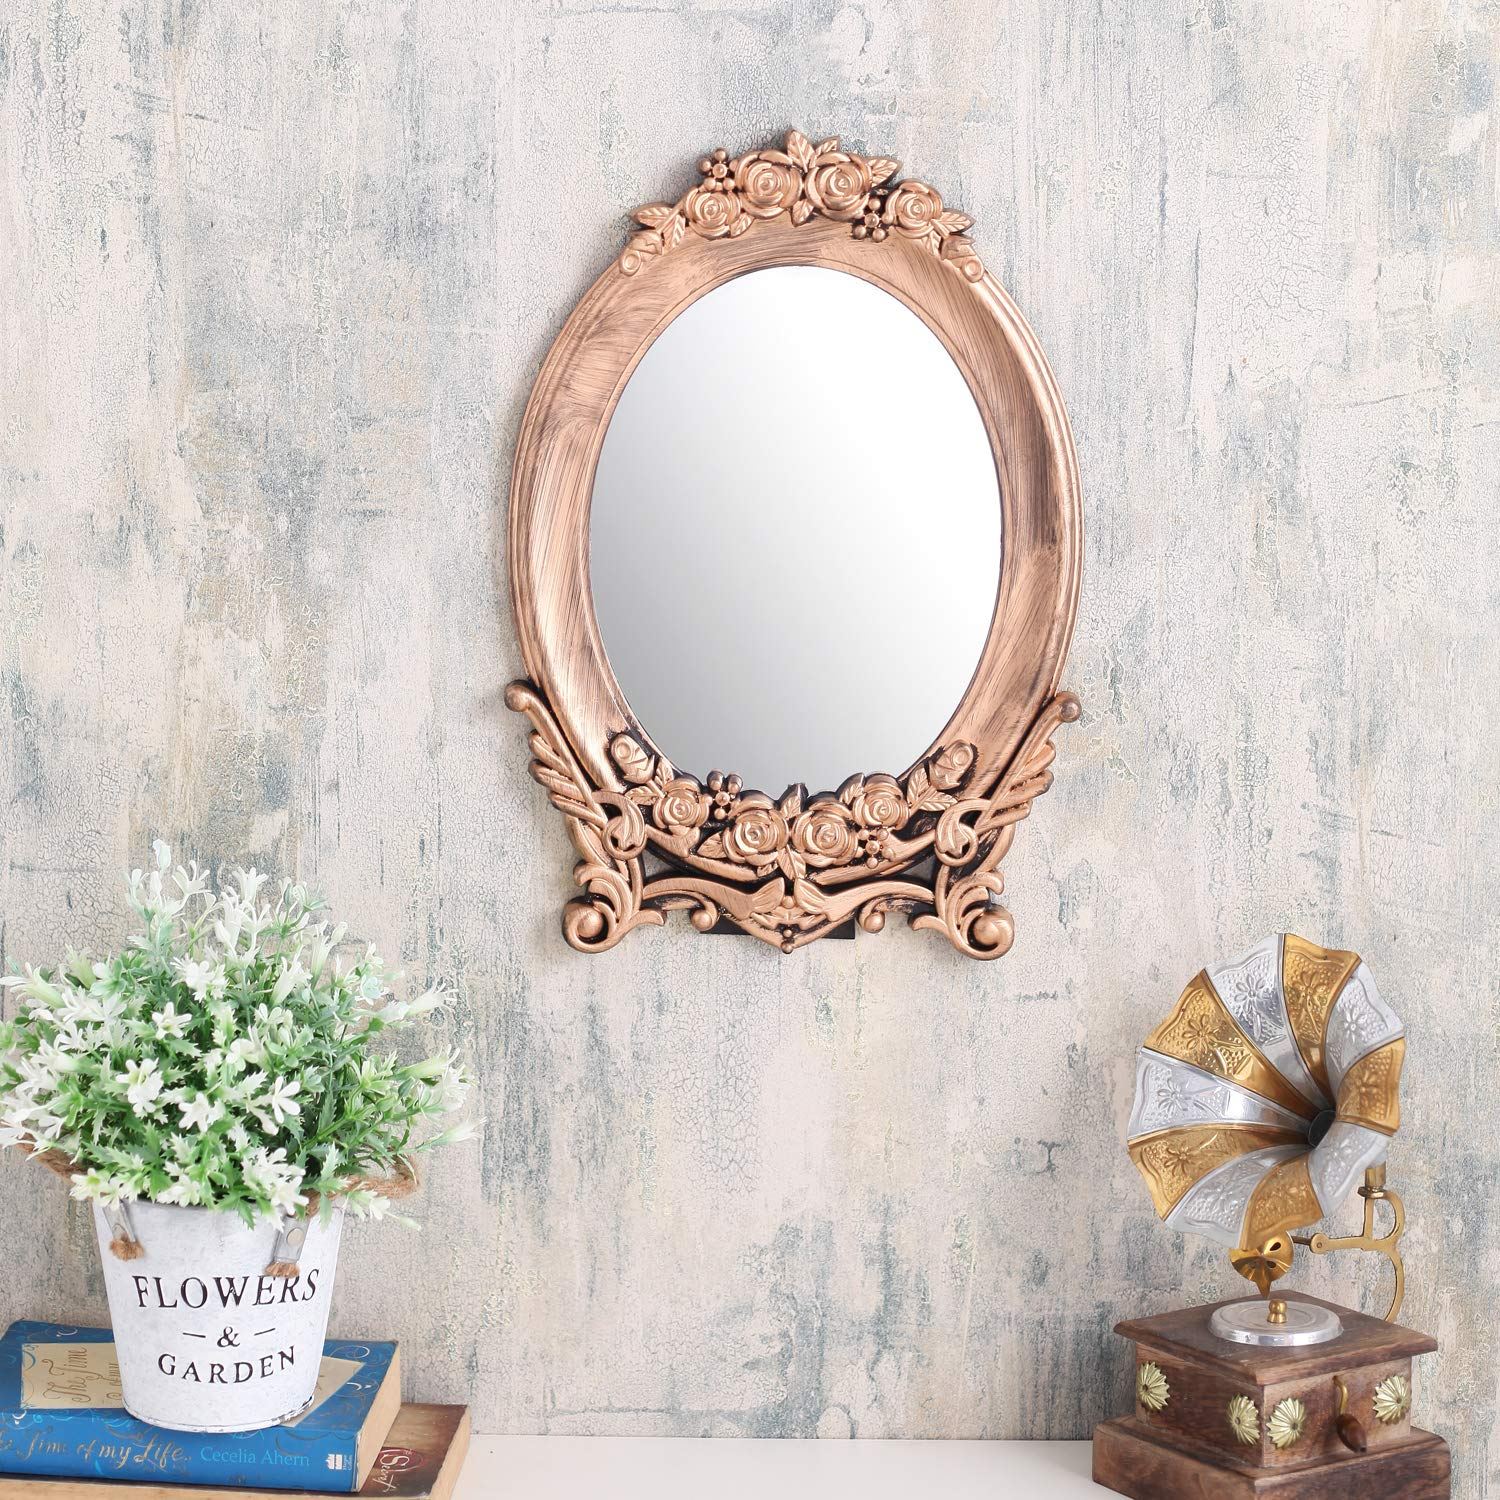 Buy A Vintage Affair Decorative Wall Mirror Antique Hanging Design Small Size Oval For Bedroom Bathroom Living Room Office Copper Online At Low Prices In India Amazon In